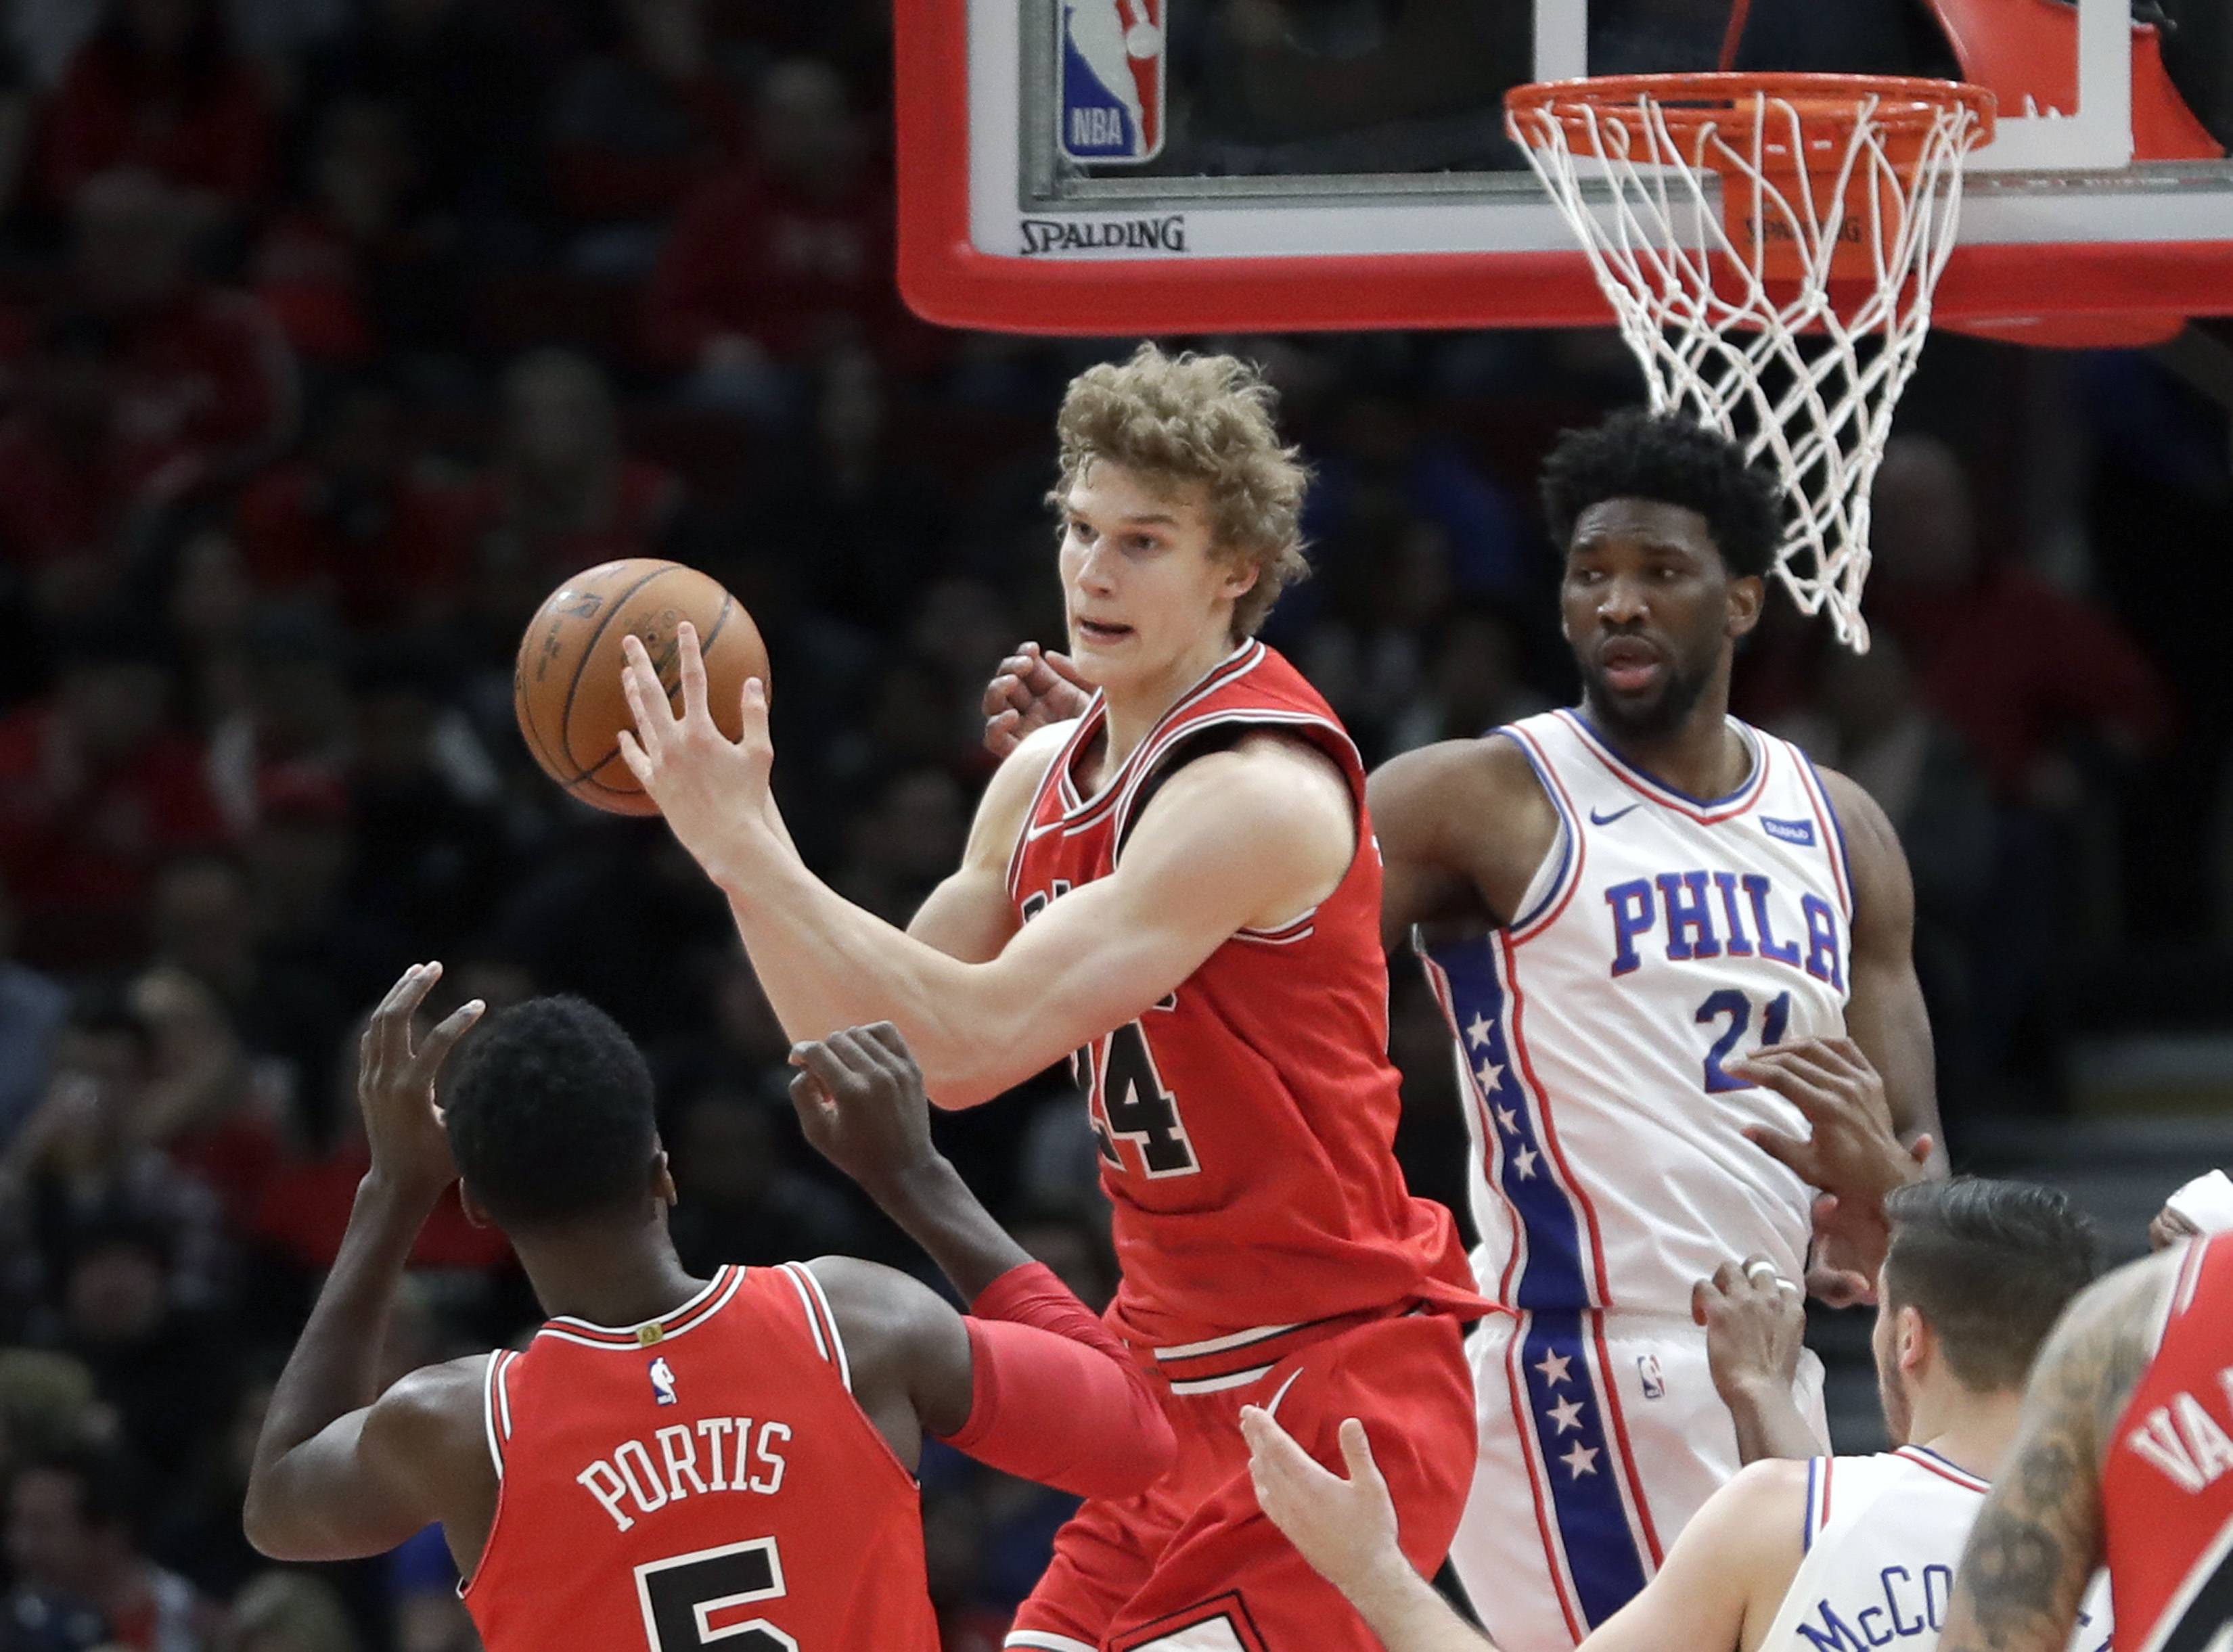 Bulls' rookie Markkanen stuck in 3-point shooting slump